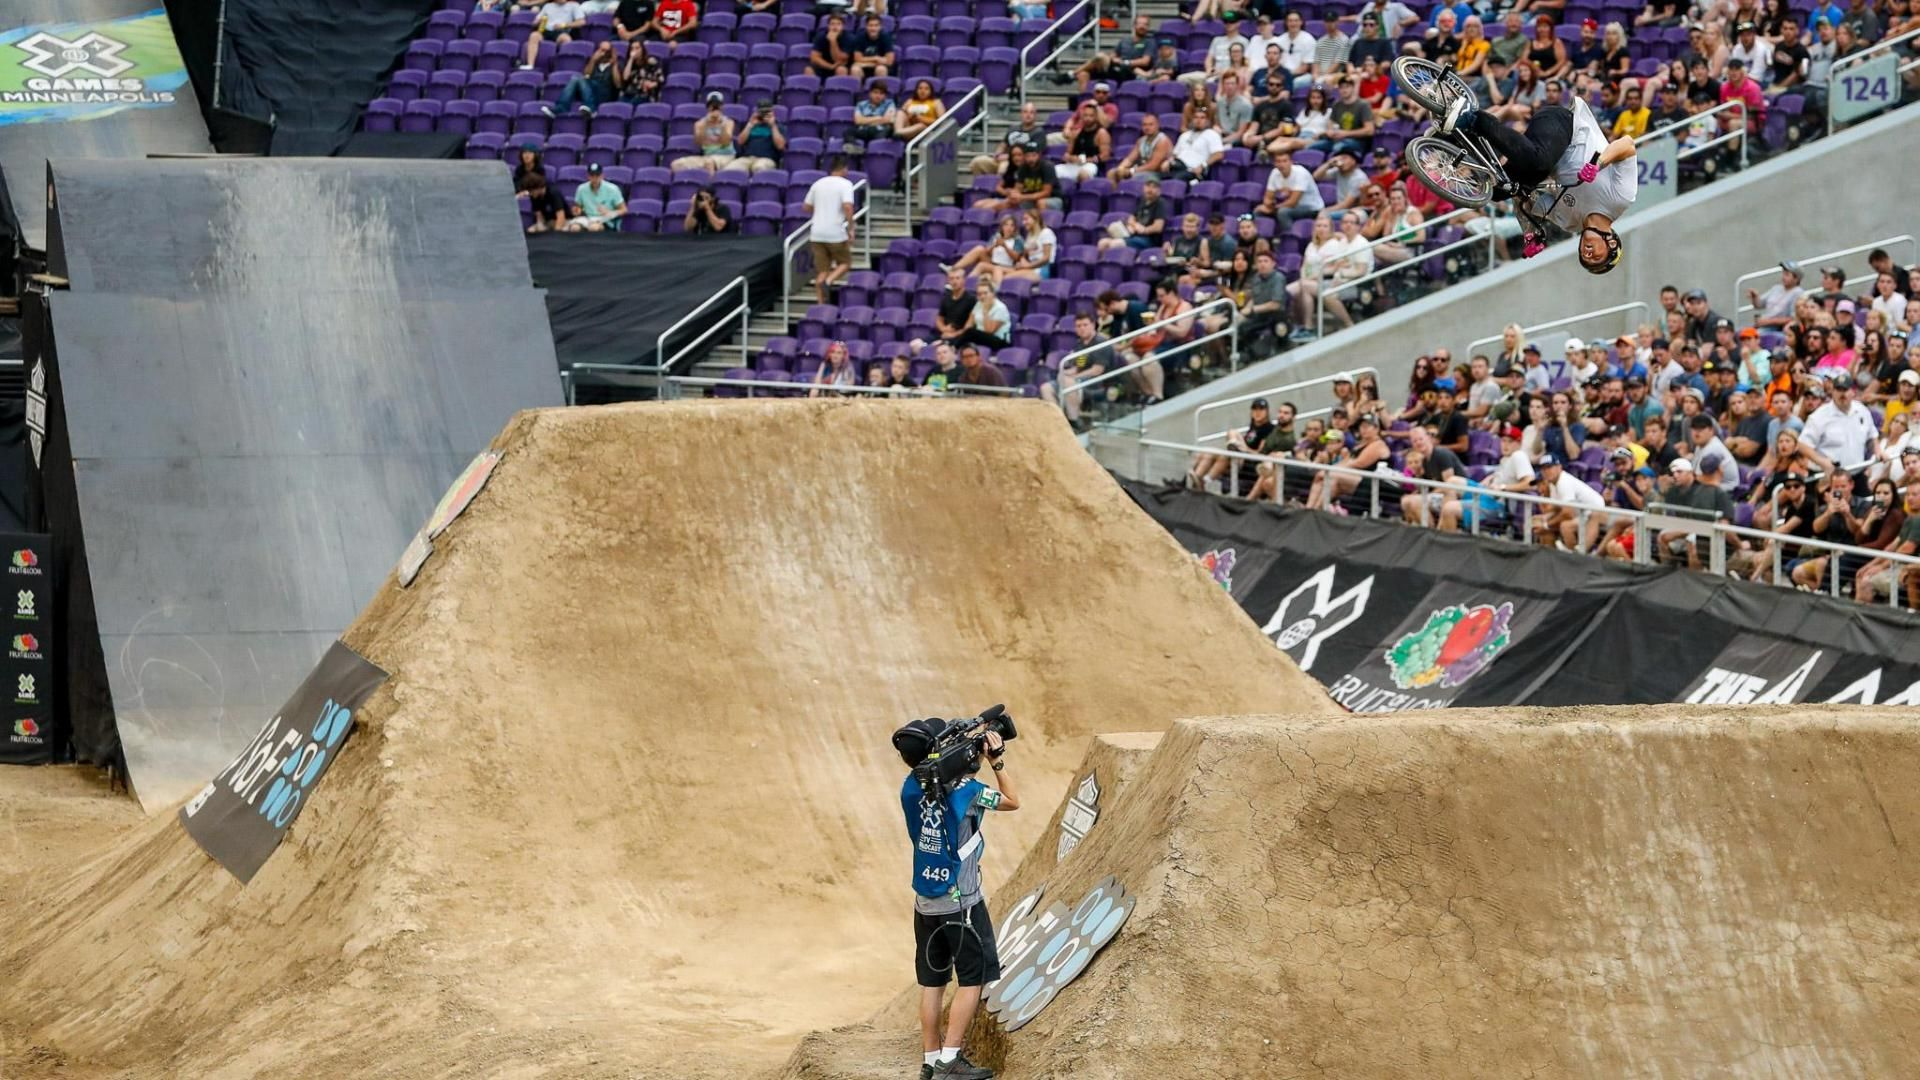 Brandon Loupos wins X Games BMX Dirt gold